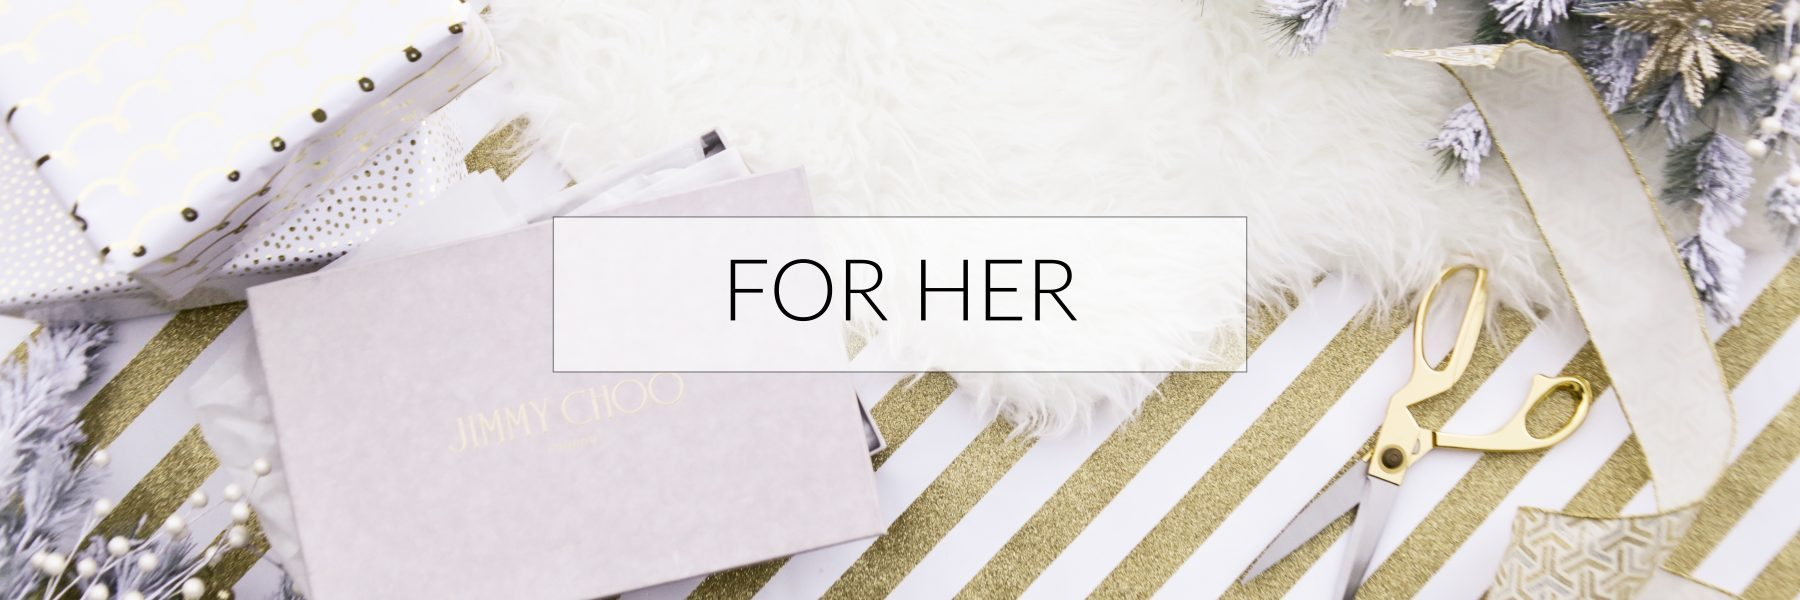 hgg-for-her-image-01